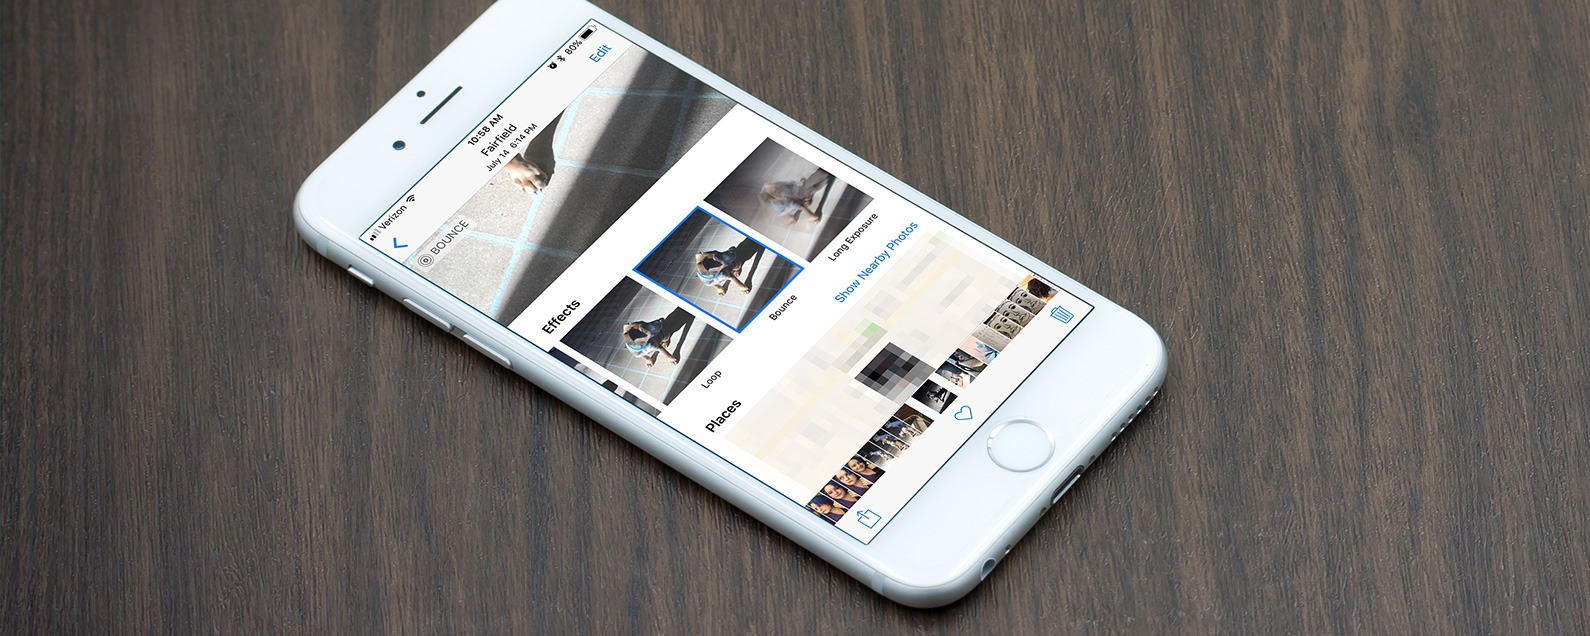 how to make a video loop on iphone